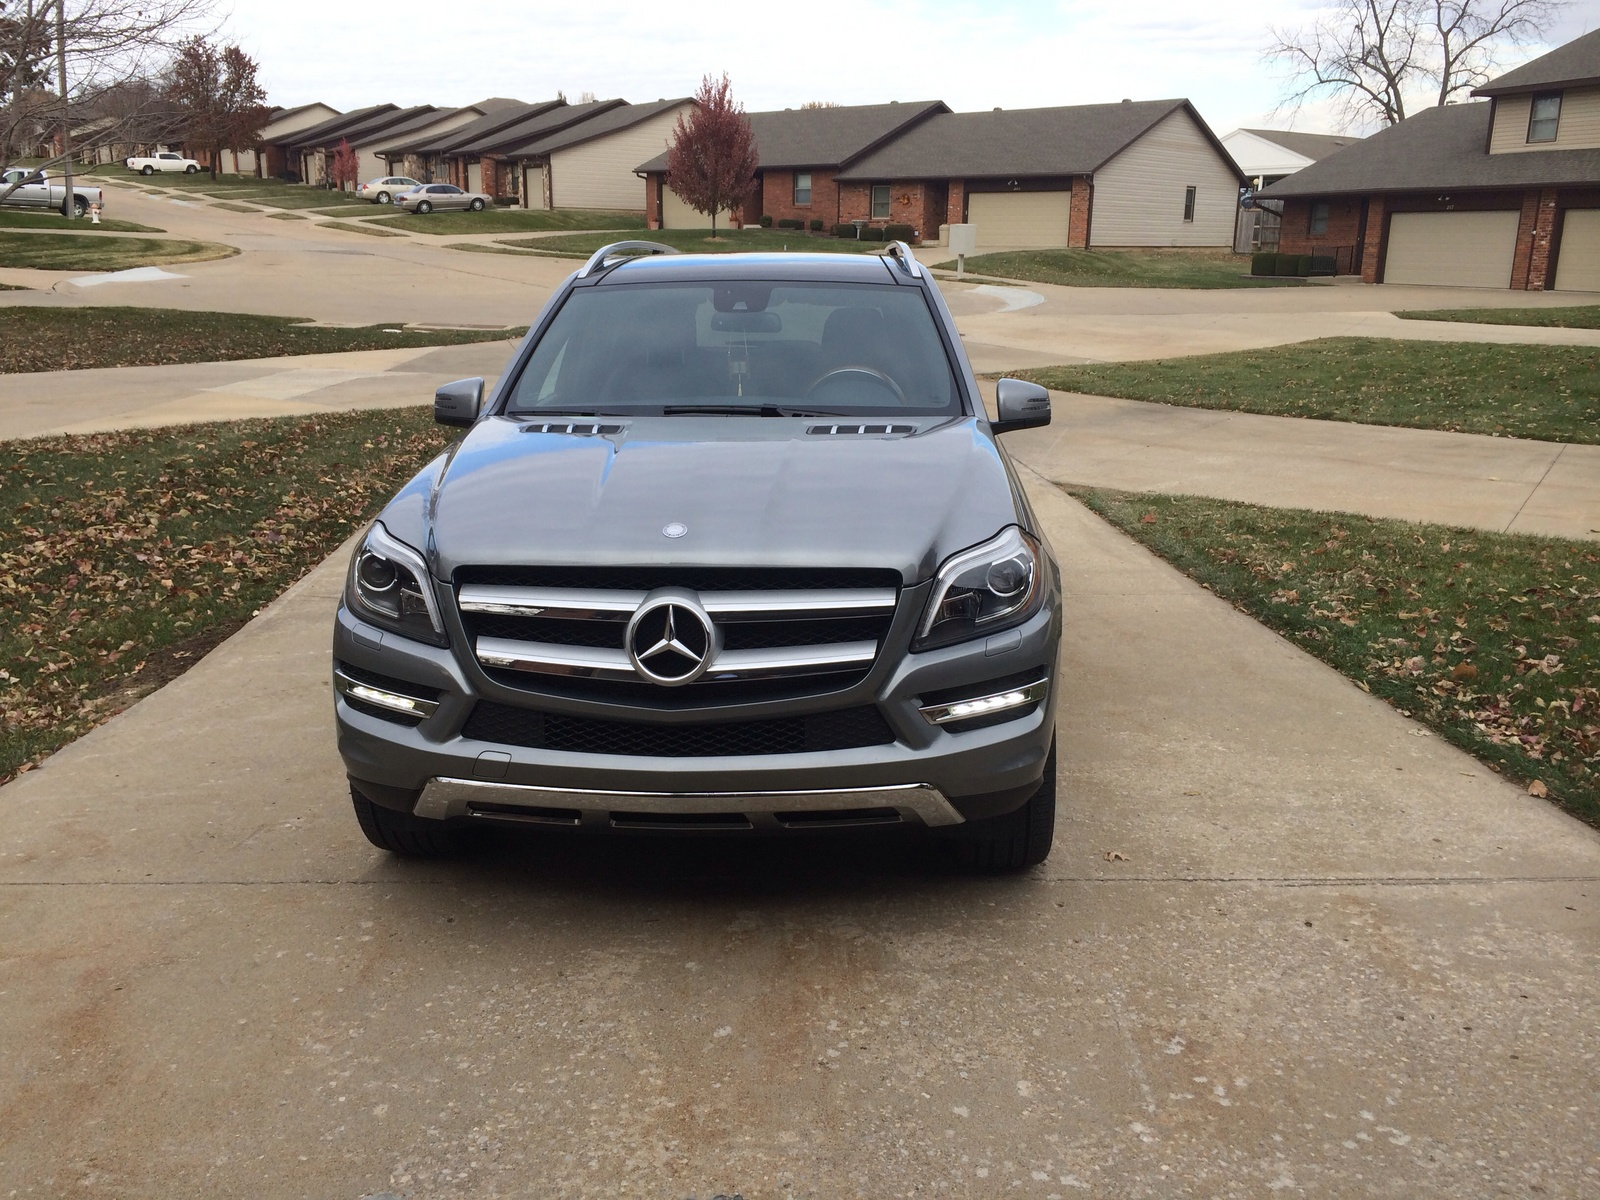 New 2015 2016 mercedes benz gl class for sale cargurus for 2014 mercedes benz gl450